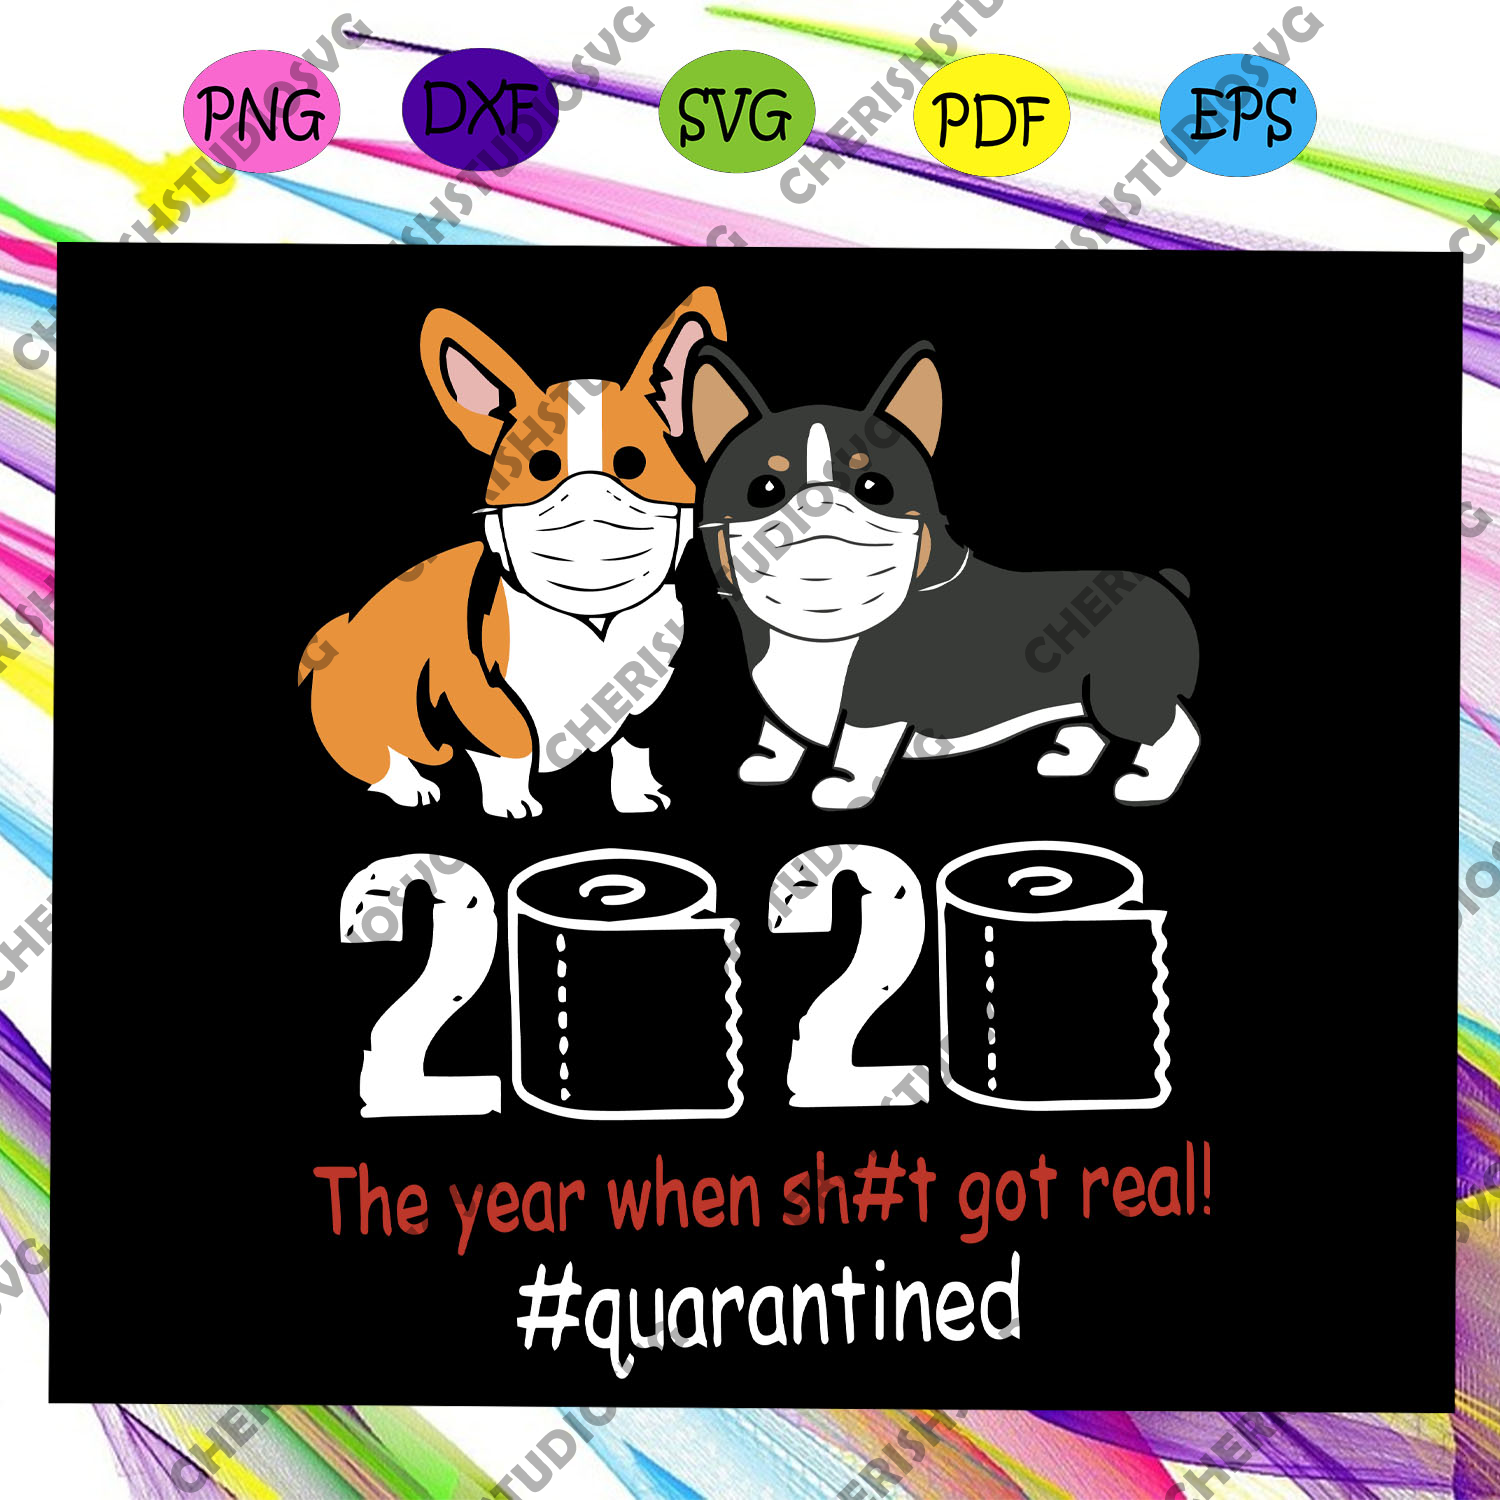 2020 the year when sh#i got real, quarantined svg, social distancing, toilet paper svg, dogs svg, dogs lover svg, pet svg, pet lover svg, pet lover gift, animal svg, Files For Silhouette, Files For Cricut, SVG, DXF, EPS, PNG, Instant Download